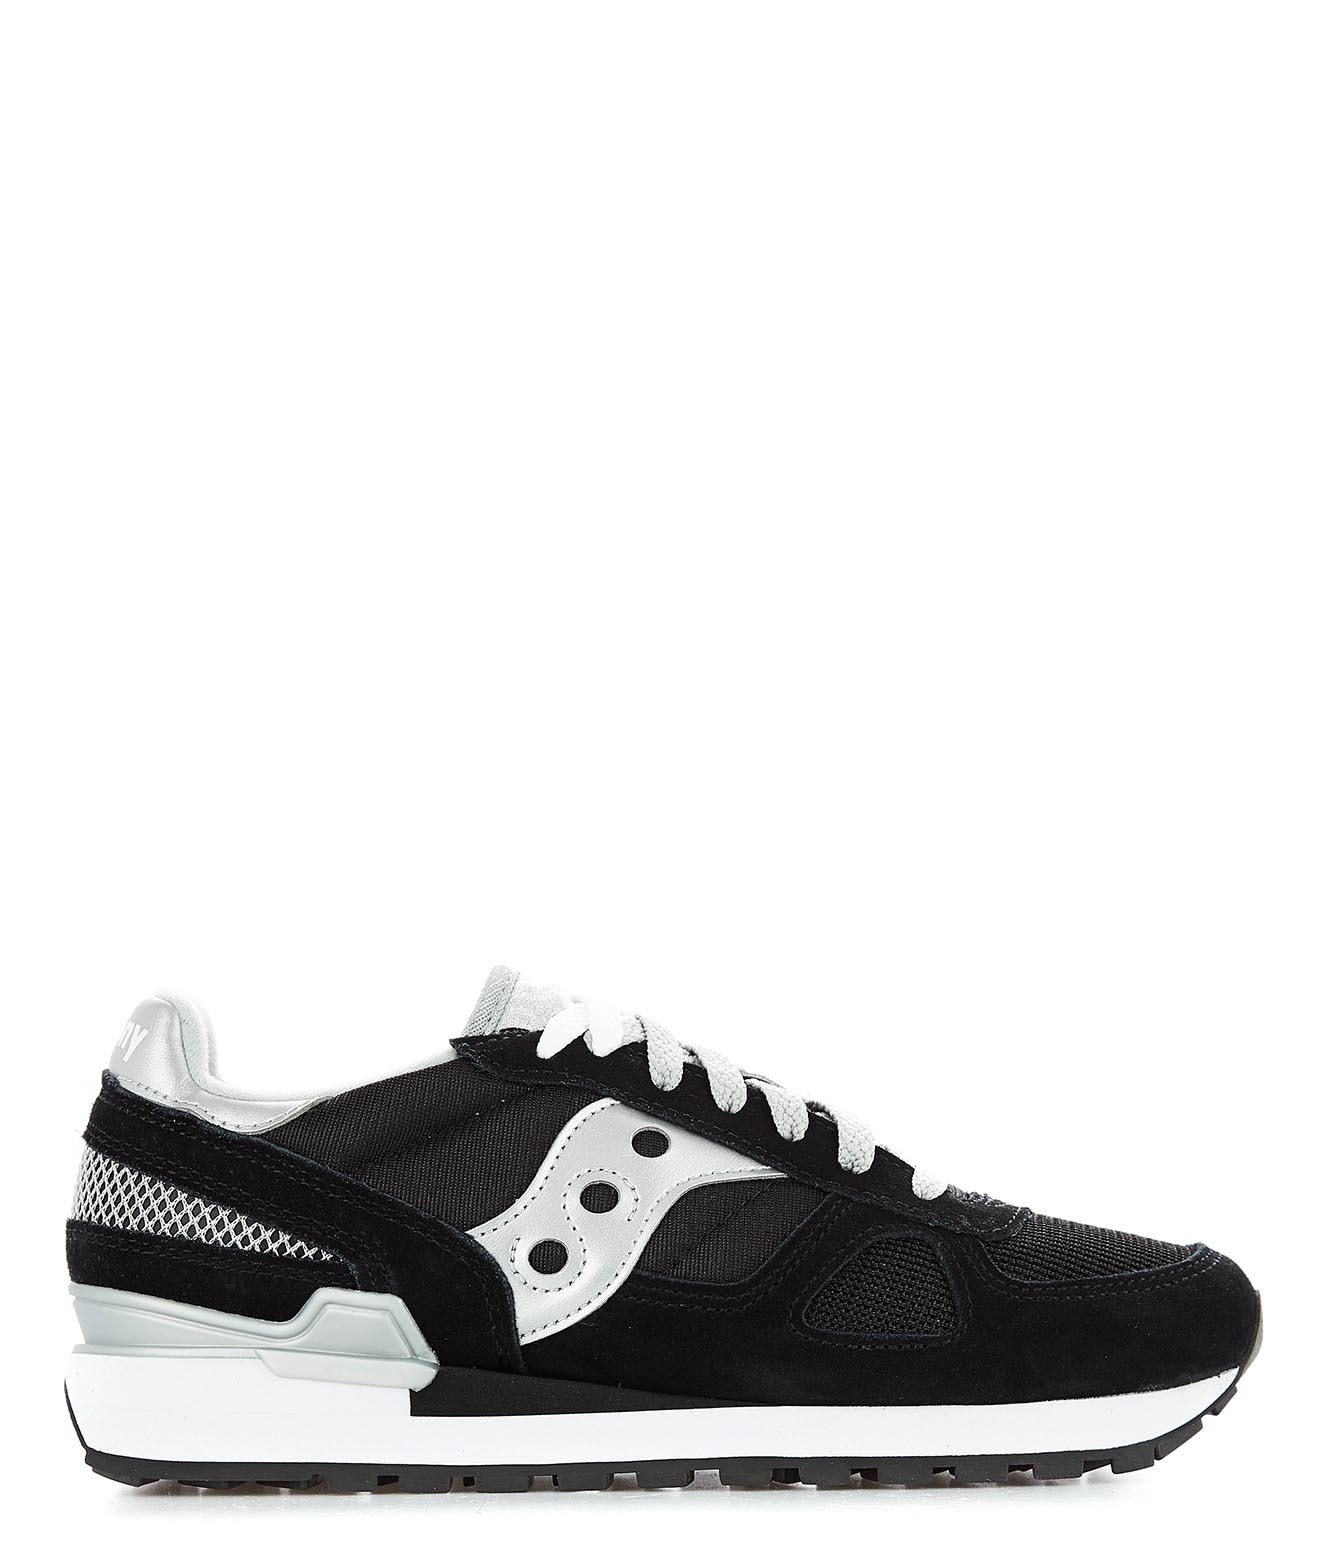 7c45a9e0 Saucony Women's Shoes Sneakers - 1108/671 | Black | Spring Summer 19 ...